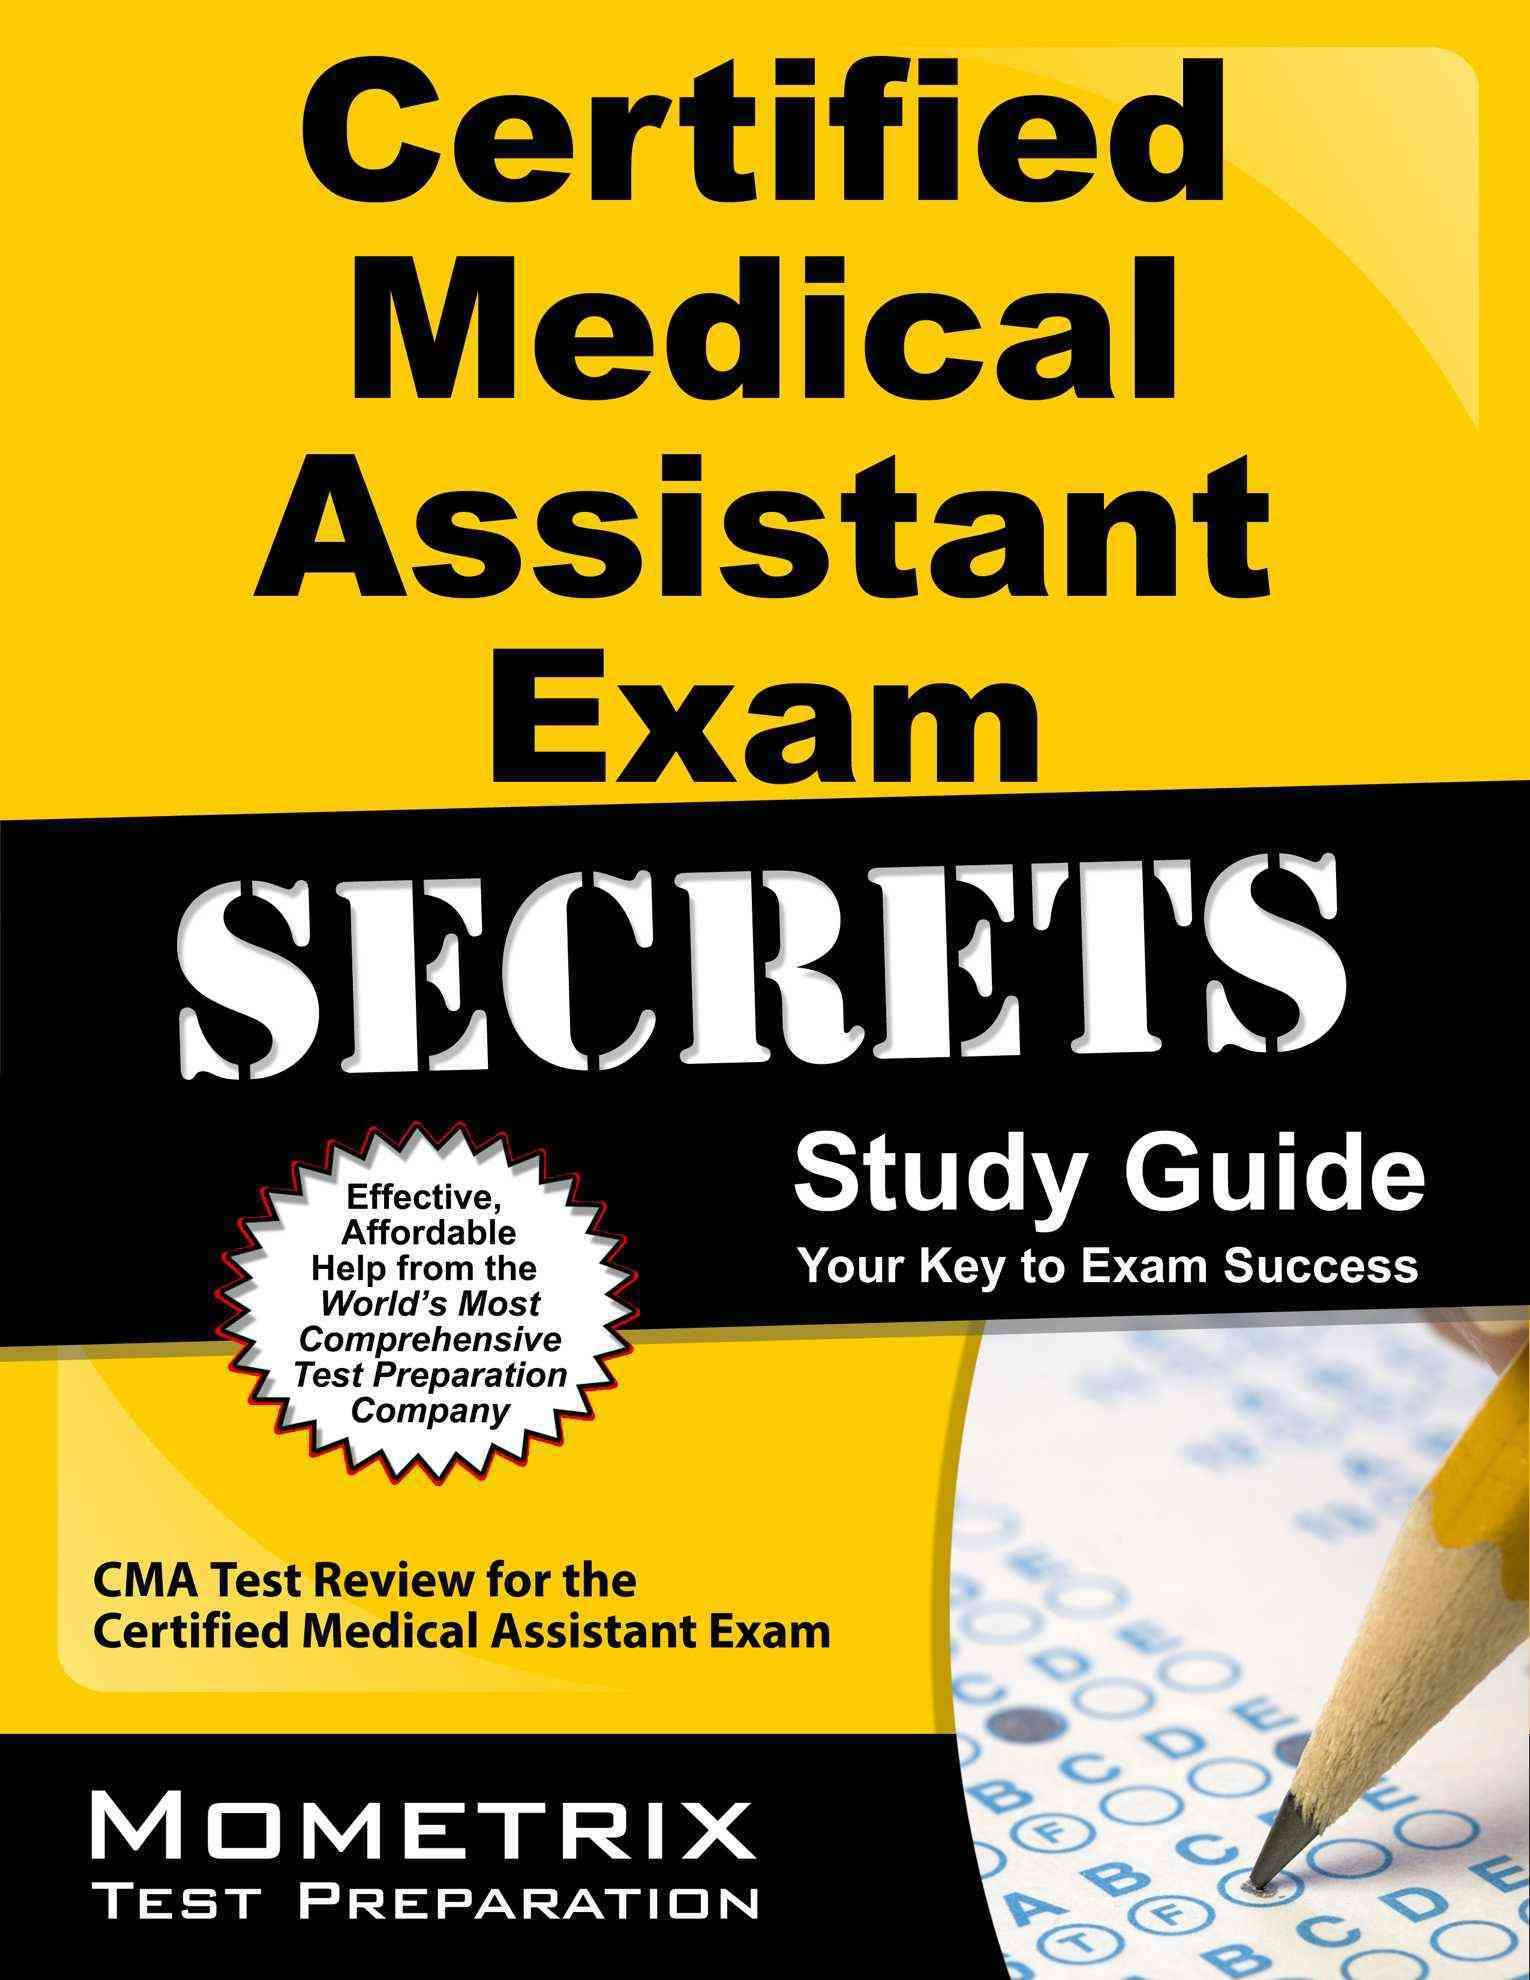 Certified Medical Assistant Exam Secrets Your Key To Exam Success